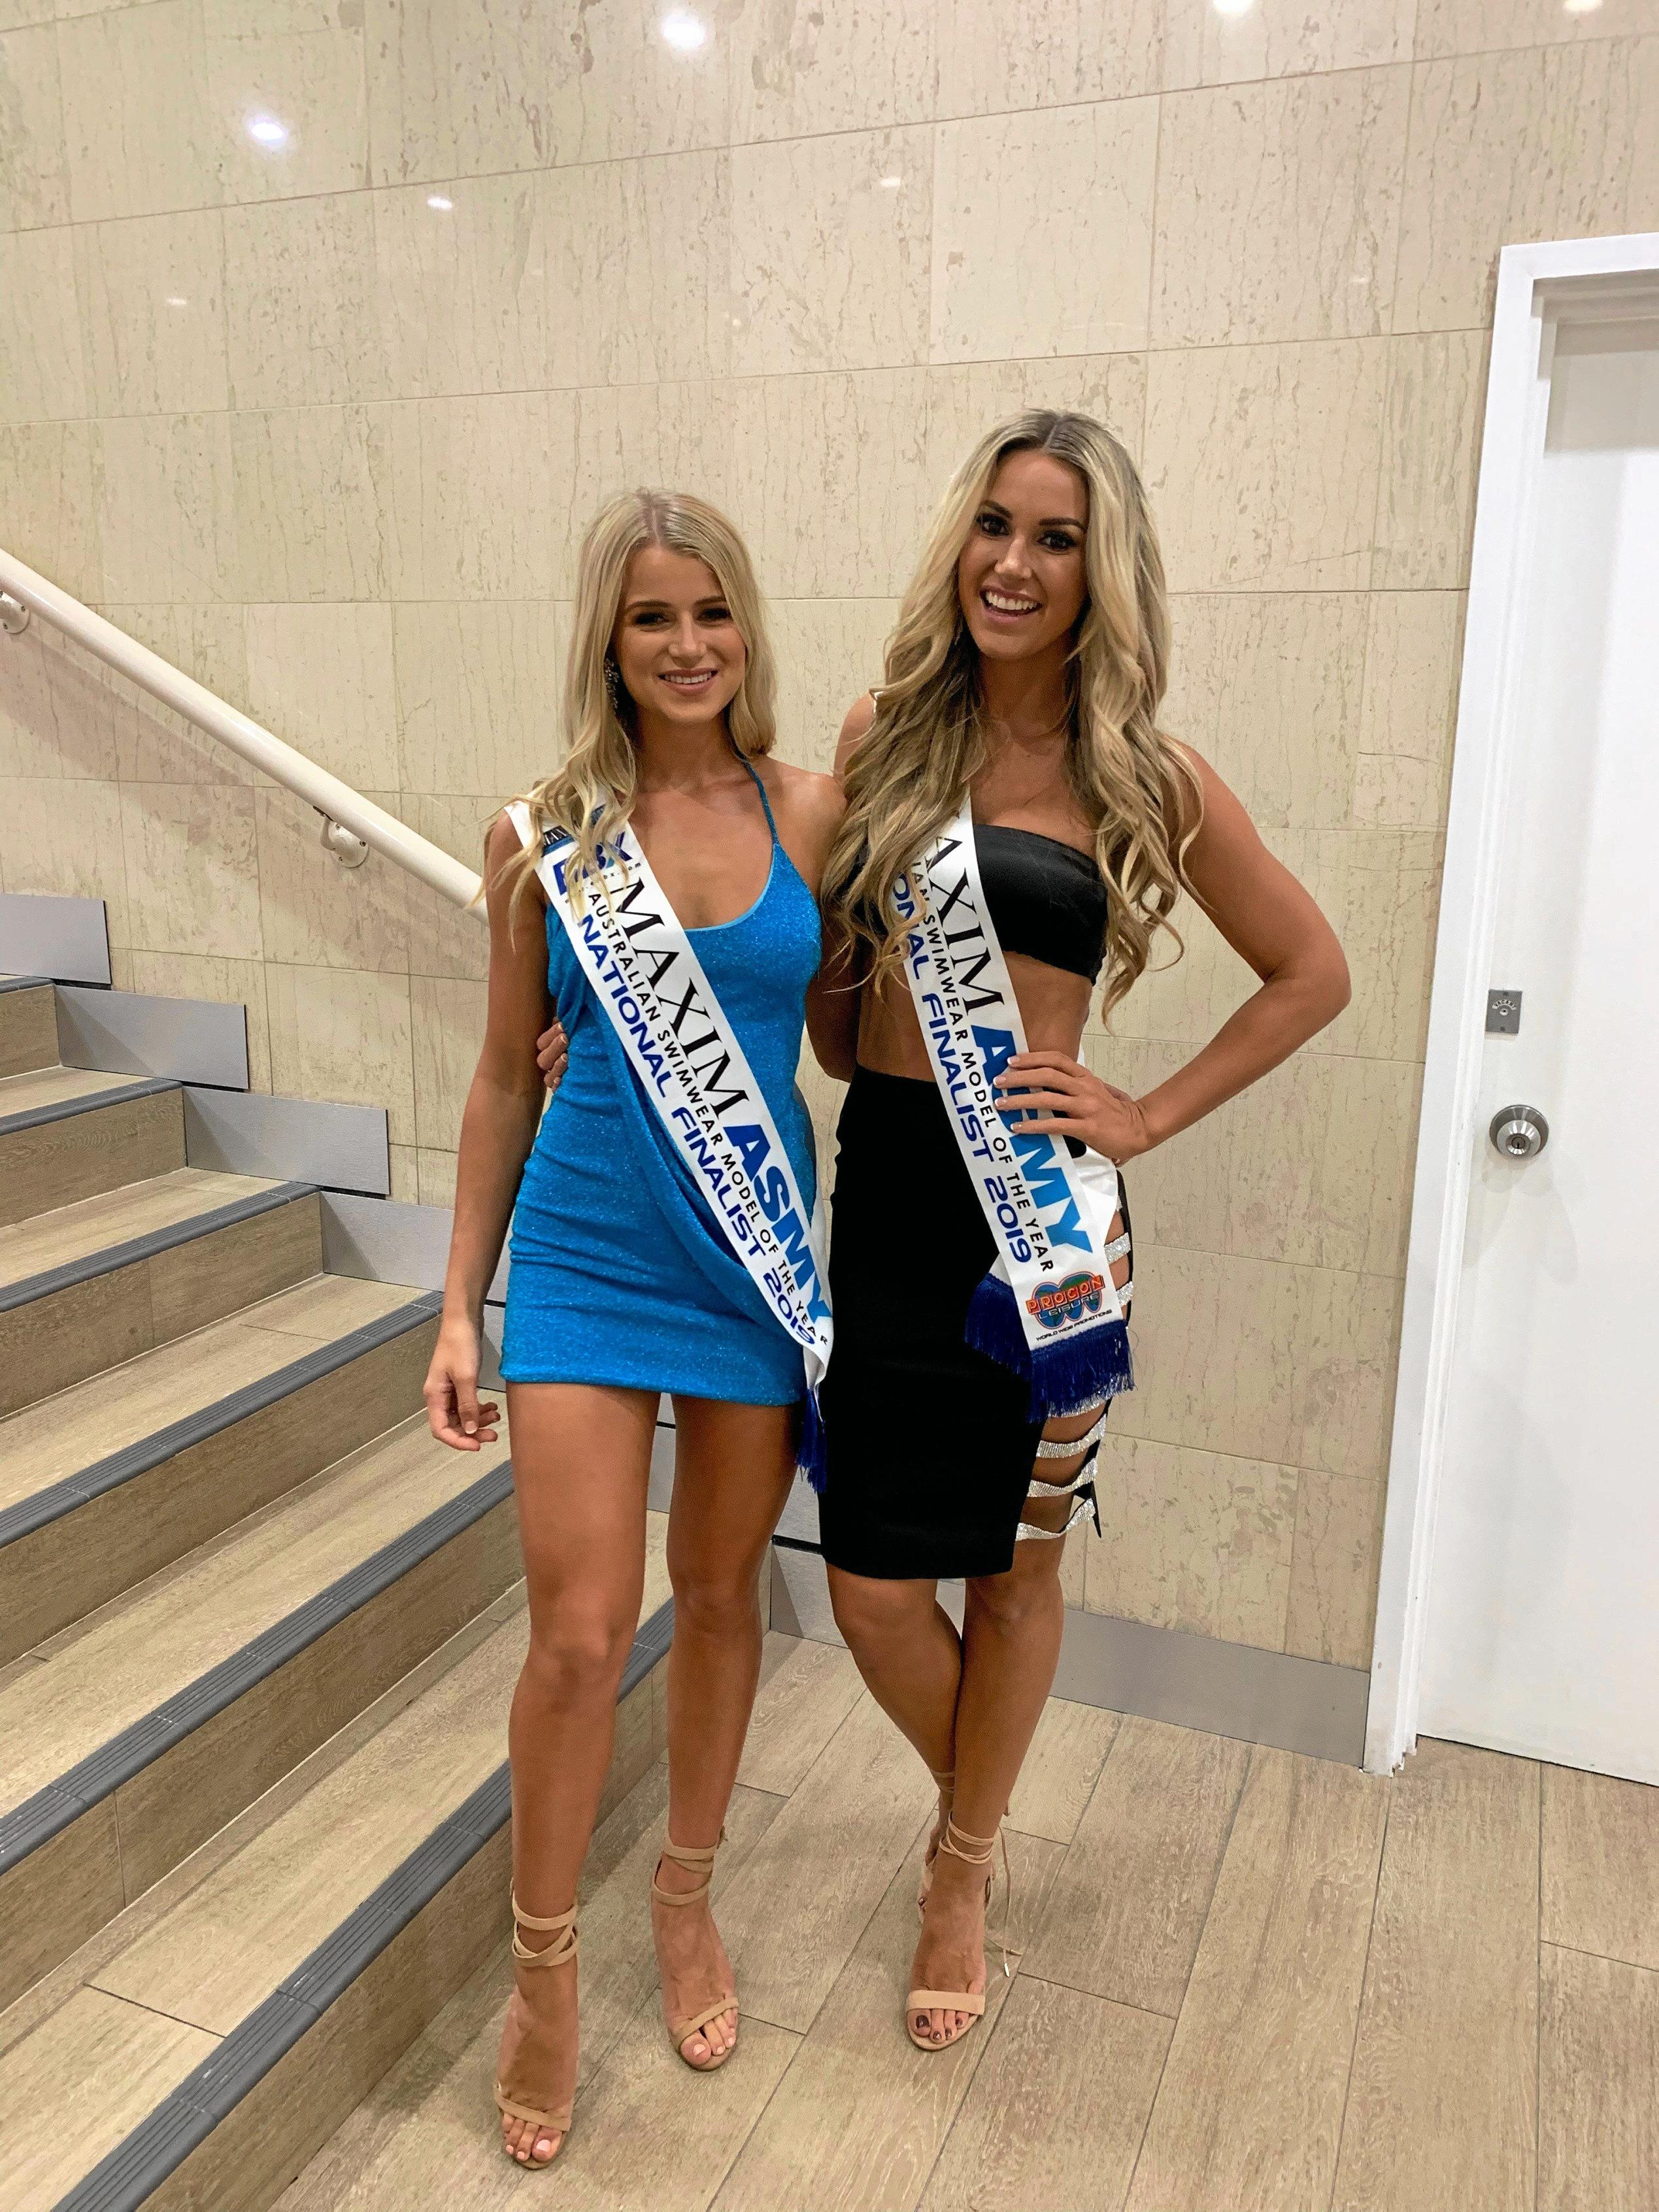 BOMBSHELL: Clare Nixon and Lara Zafir are heading to the Mexico in less than three weeks for the Miss Swimsuit USA International.